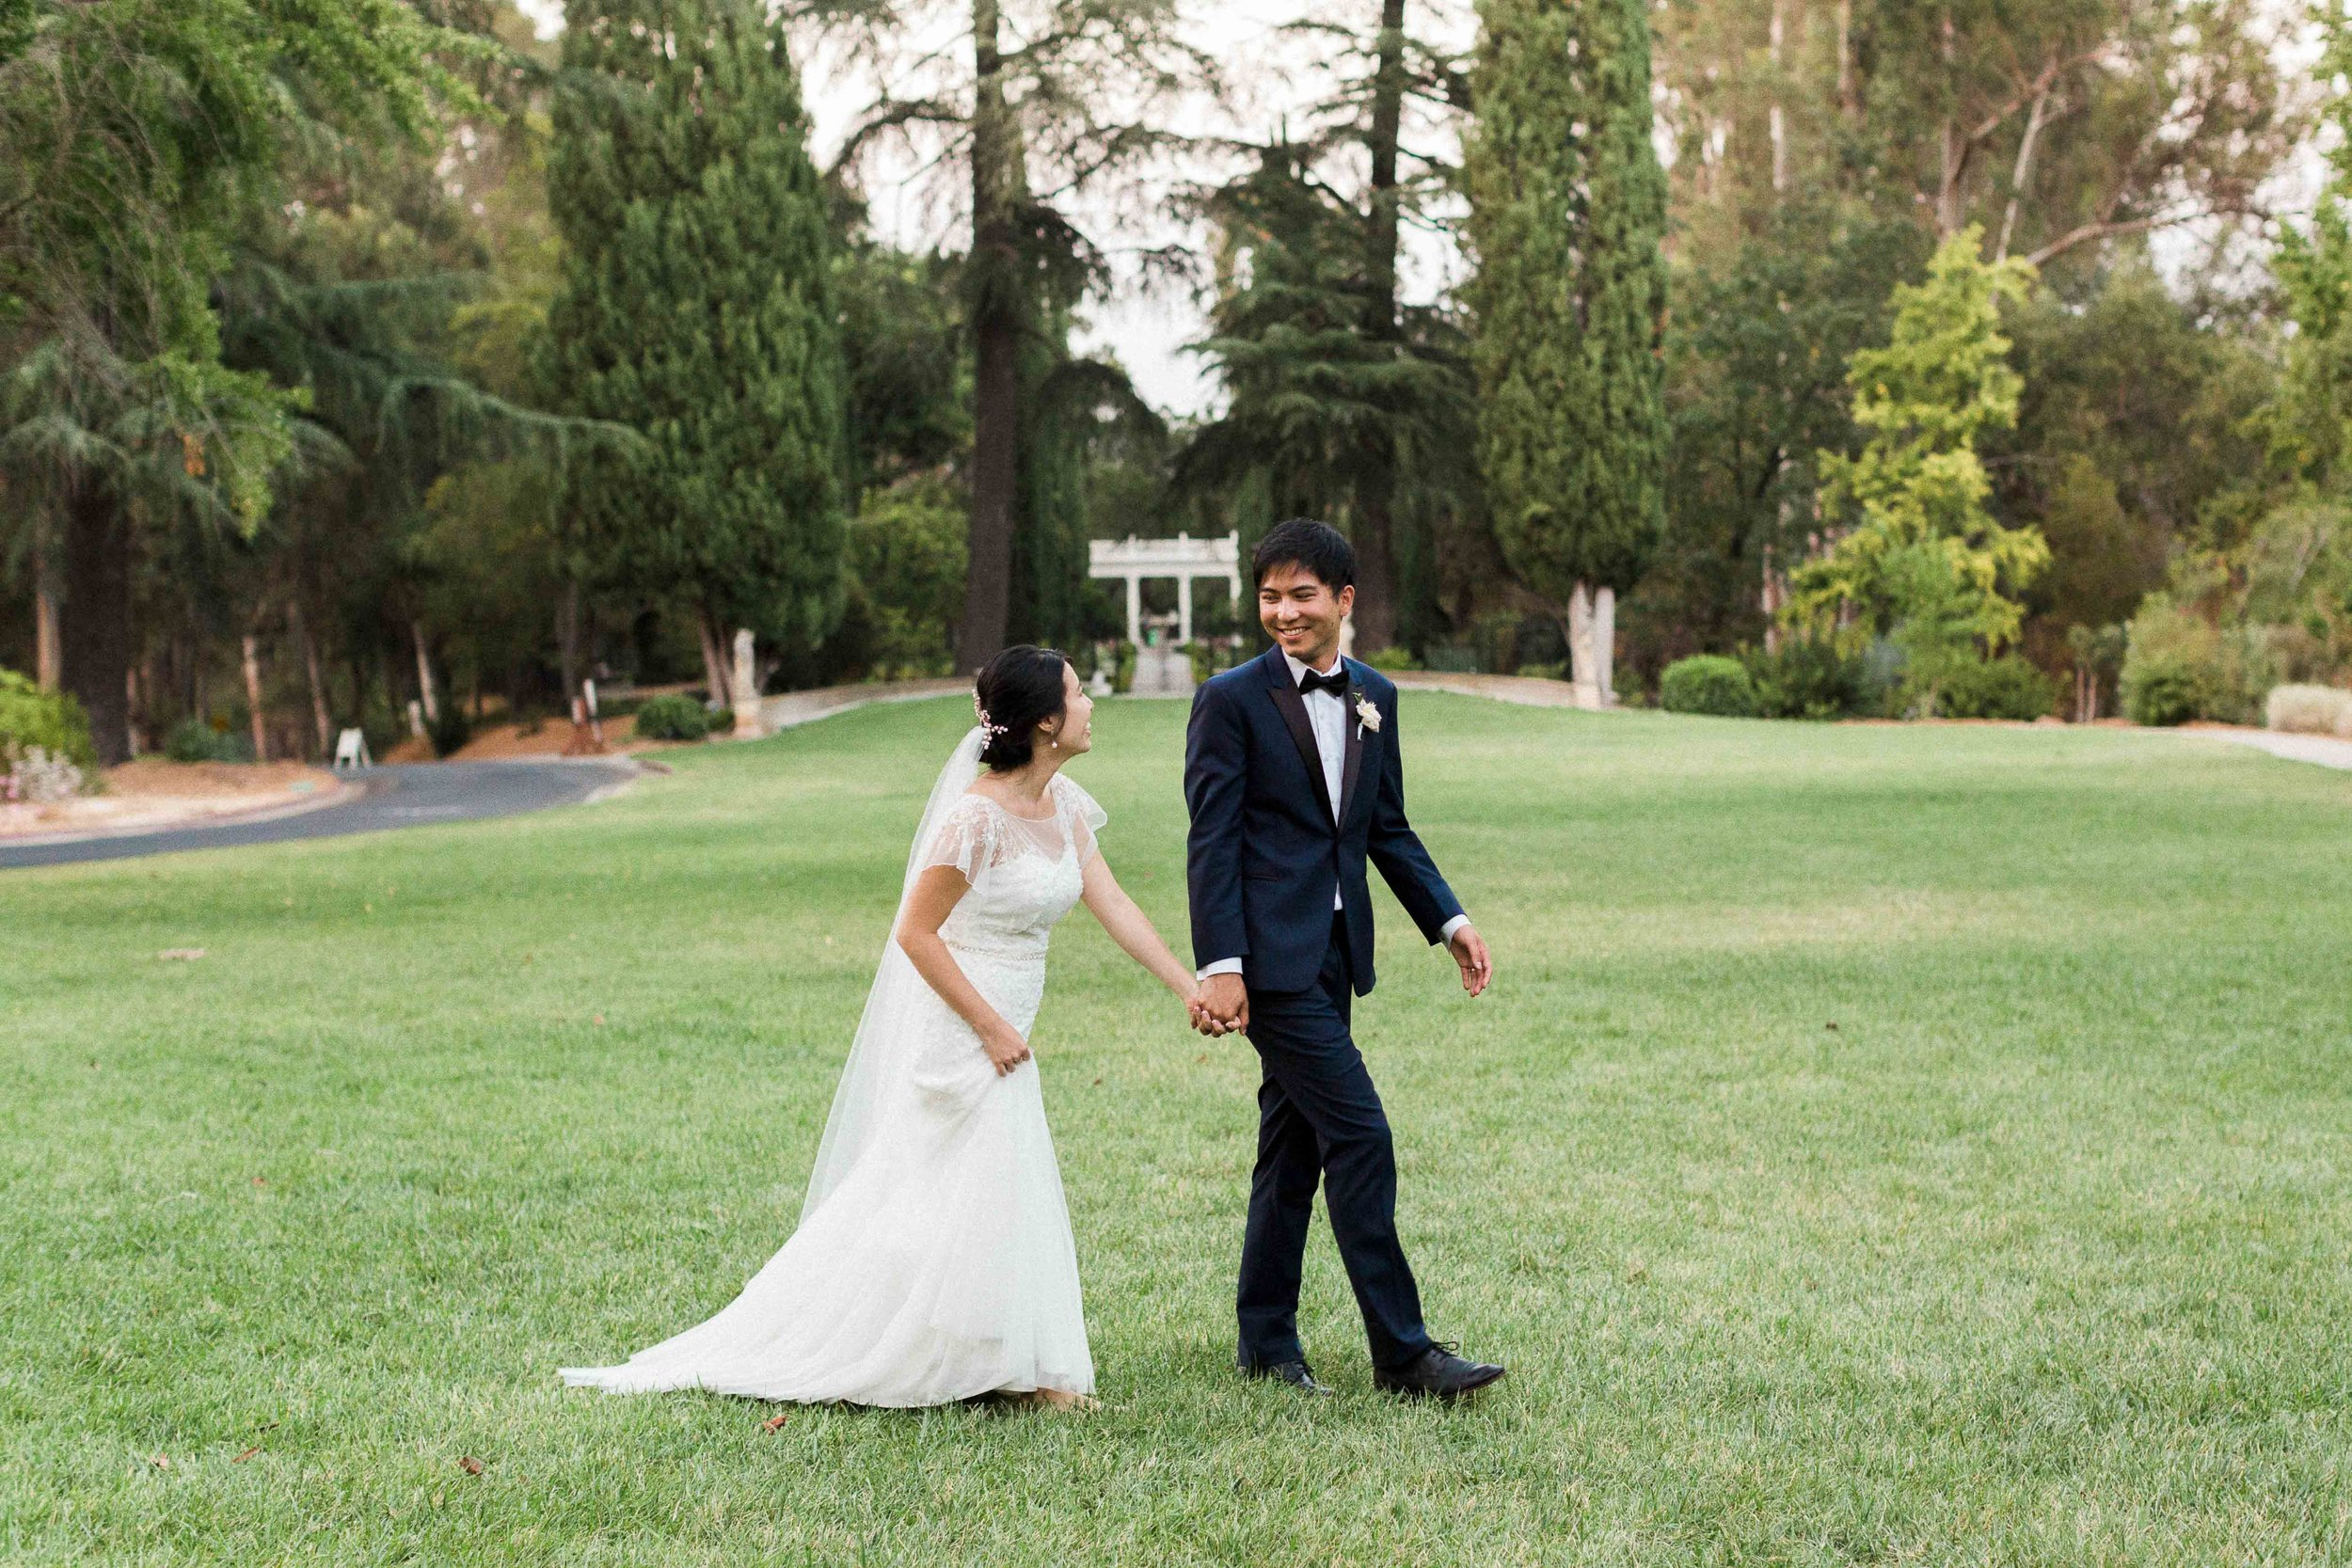 Villa_Montalvo_Wedding_Photographer_Videographer_San_Francisco191.jpg